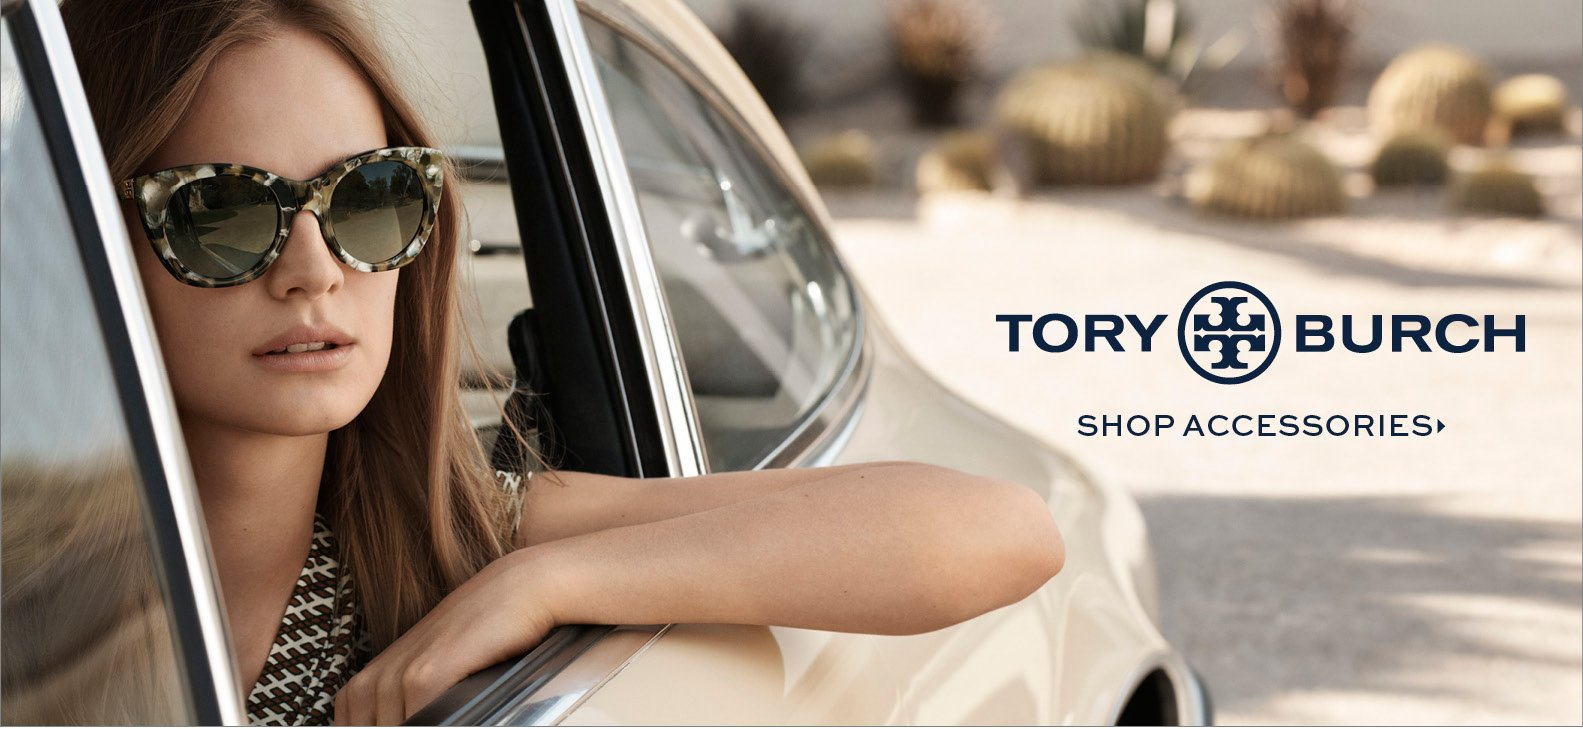 Hero-1-ToryBurch-16-9-2016 Tory Burch Accessories. Shop Now.